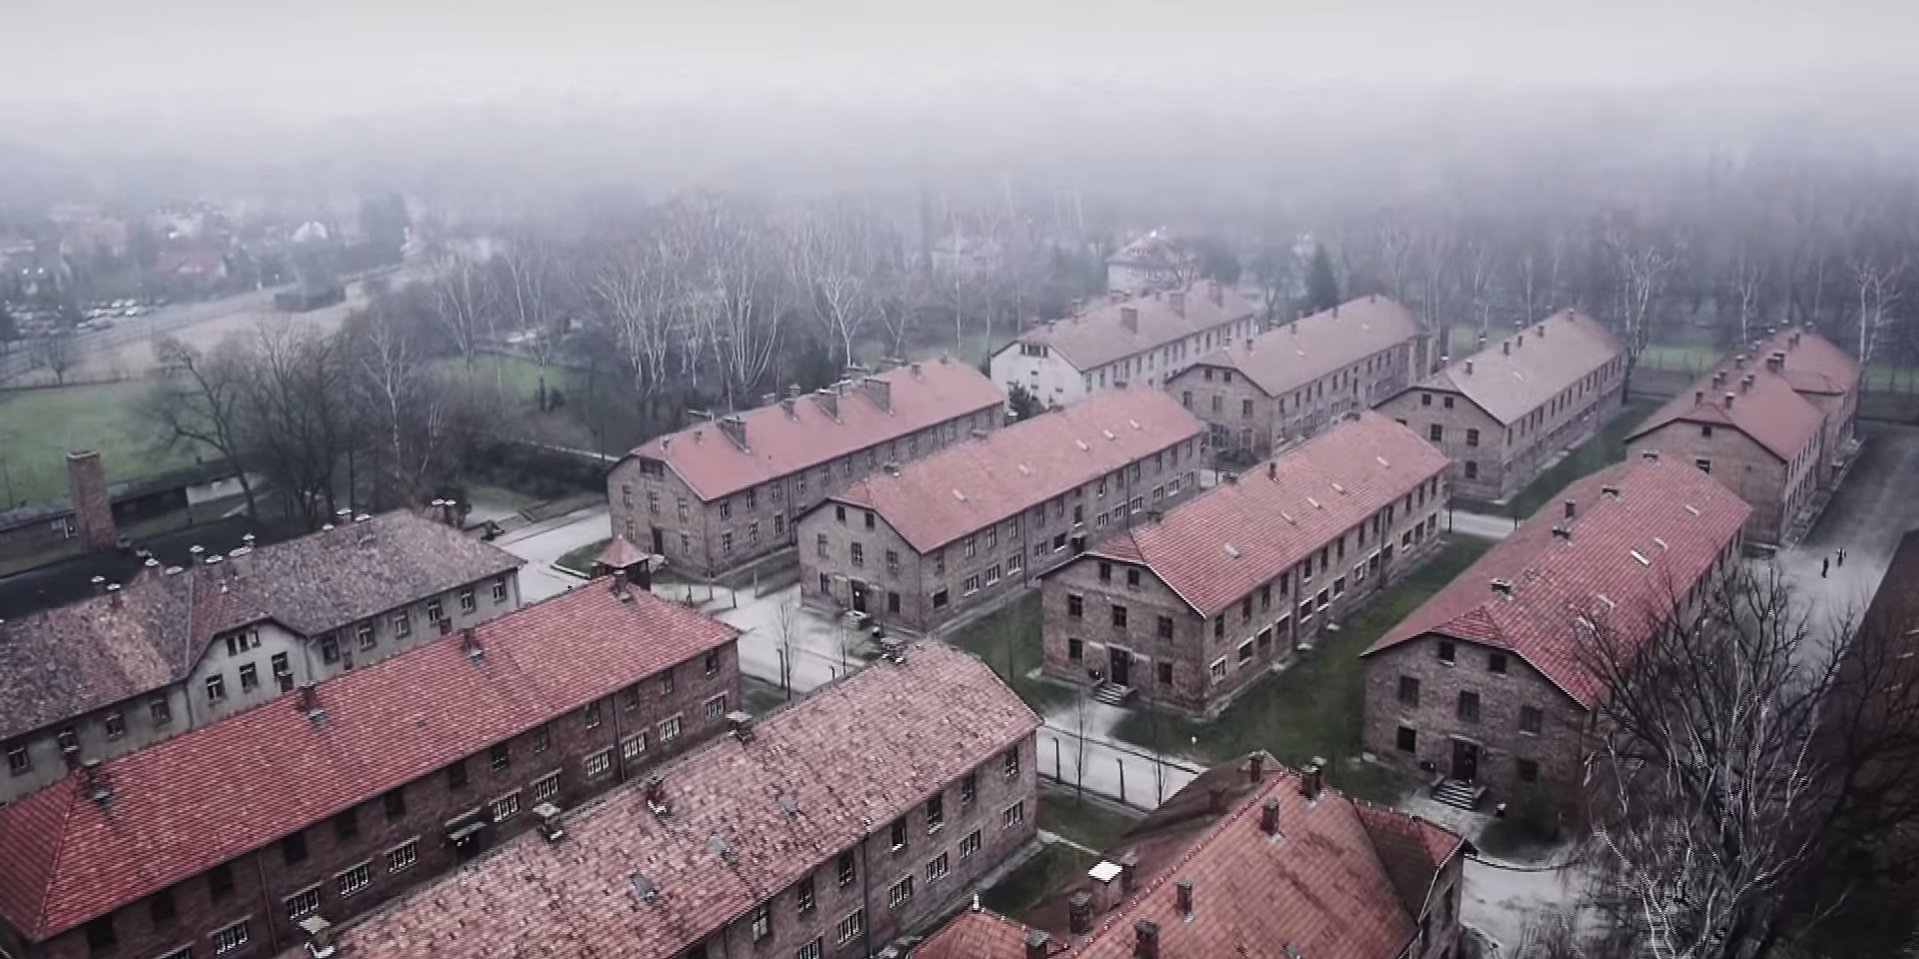 Auschwitz Captured in Haunting Drone Footage (and a New Short Film by Steven Spielberg & Meryl Streep)